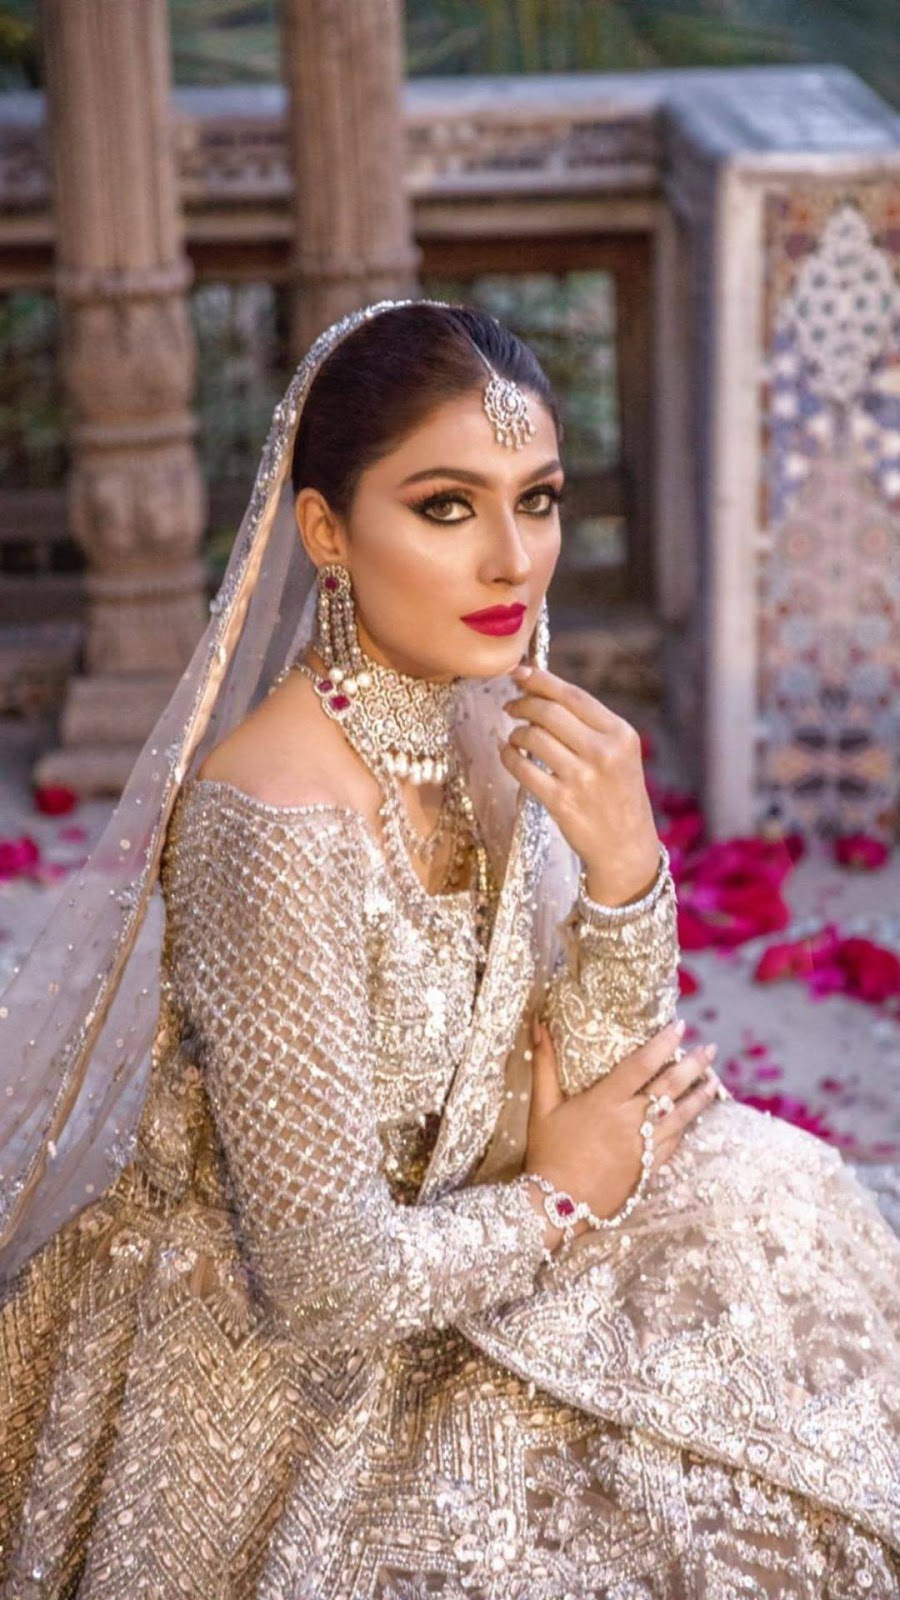 Pastel Dress with Silver Jewelry and Dark Red Lipstick | Ayeza Khan New Shoot is a Major Bridal Goal